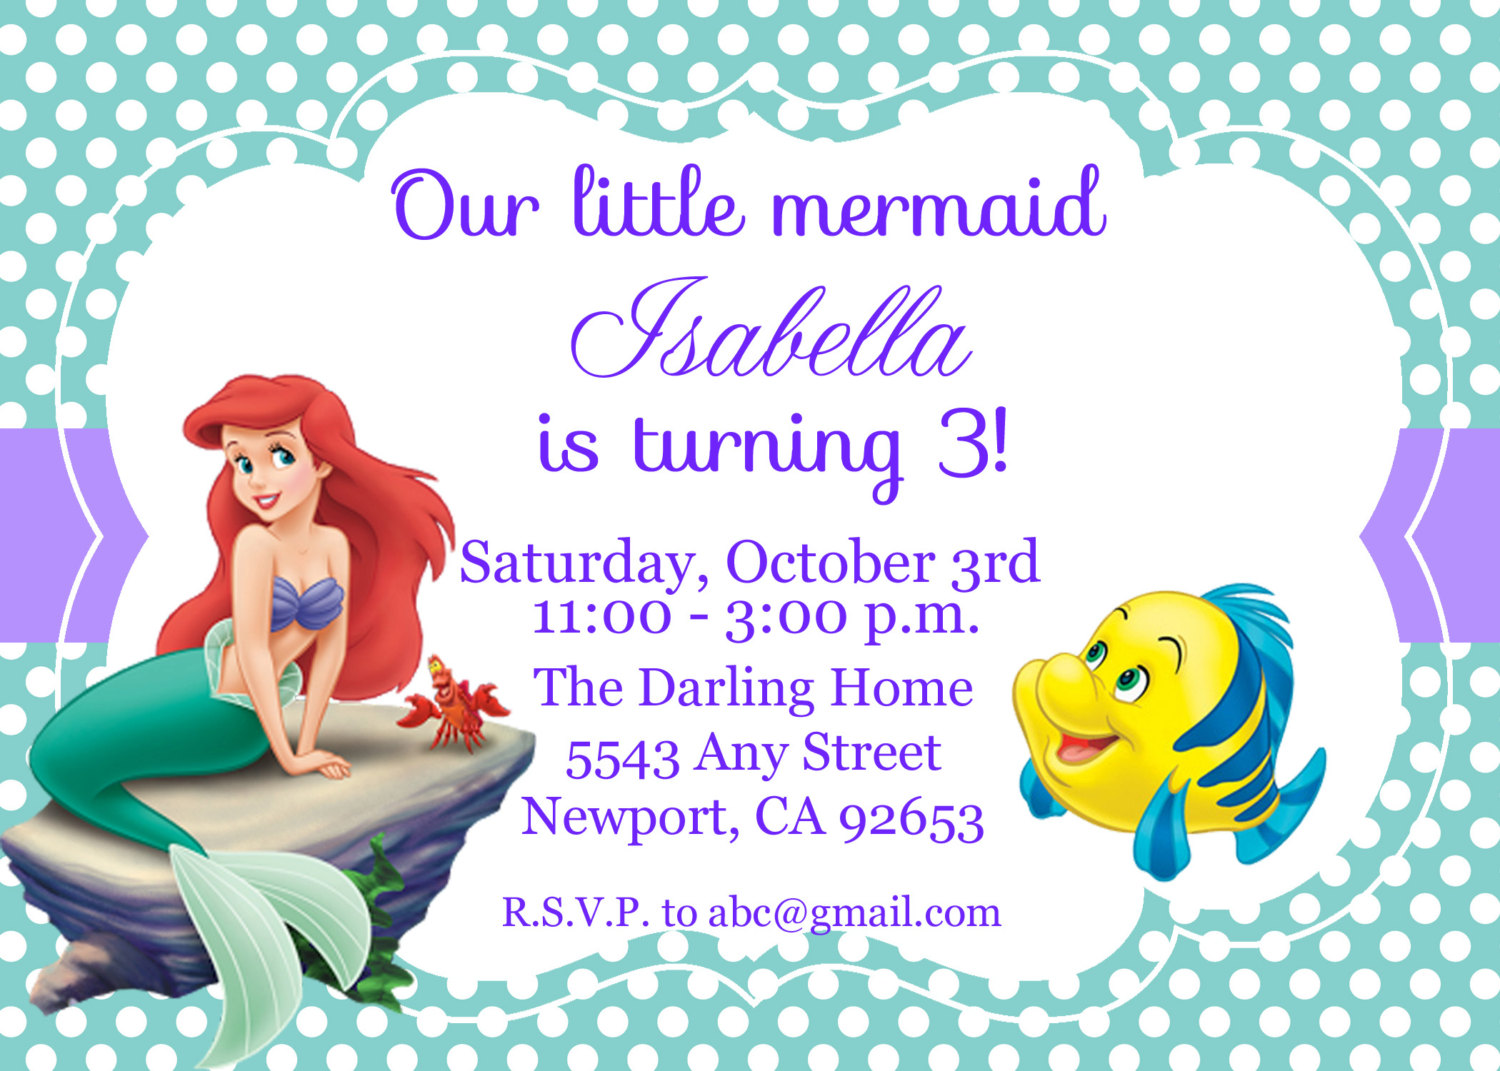 ariel happy birthday card ; Little-mermaid-birthday-invitations-and-get-inspired-to-create-your-own-birthday-invitation-design-with-this-ideas-1